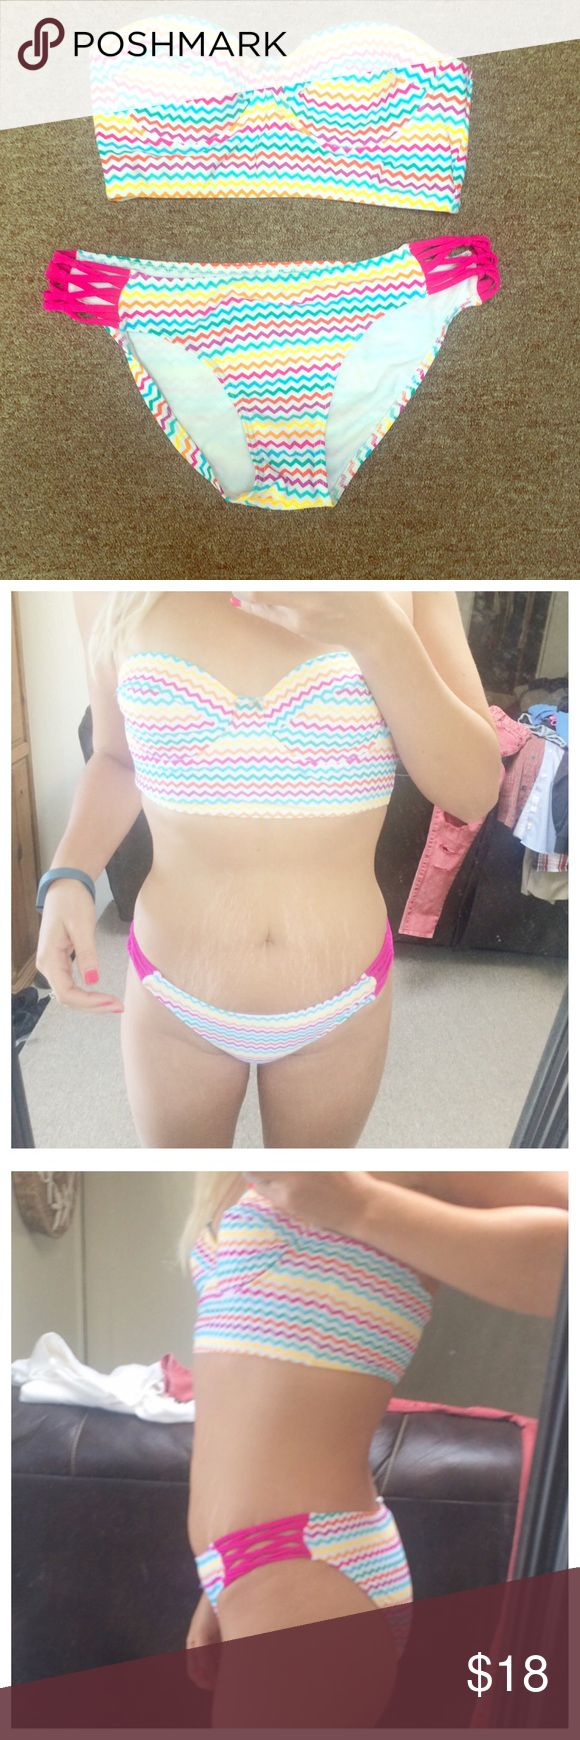 Tube top bikini White Bikini with colorful stripes. Never looked right on me since I'm small chested. I also don't like showing off my stretch marks. Good condition. Swim Bikinis